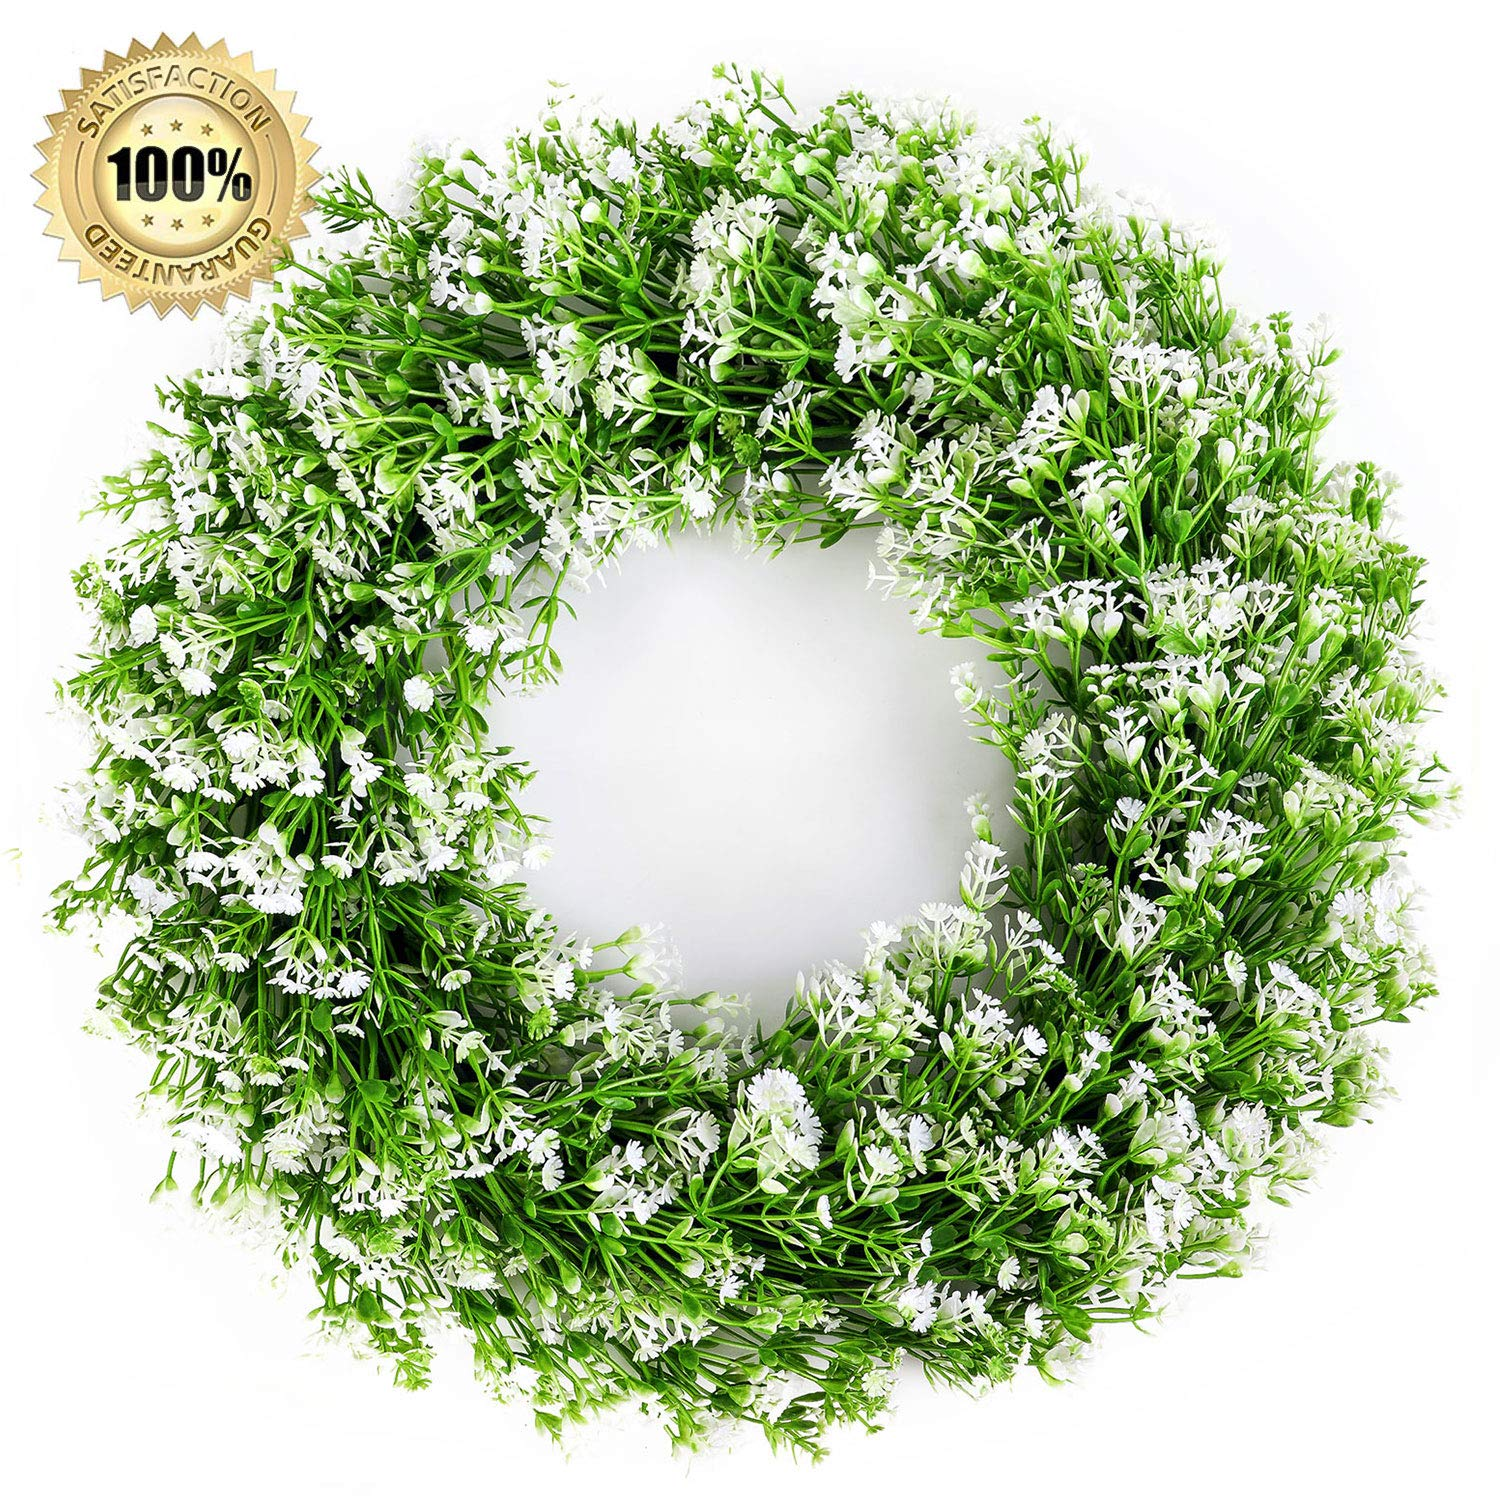 LASPERAL 14 Artificial Green Leaves Wreath Eucalyptus Wreath Boxwood Wreath Round Green Wreath Outdoor Green Wreath Front Door Wall Window Party D/écor